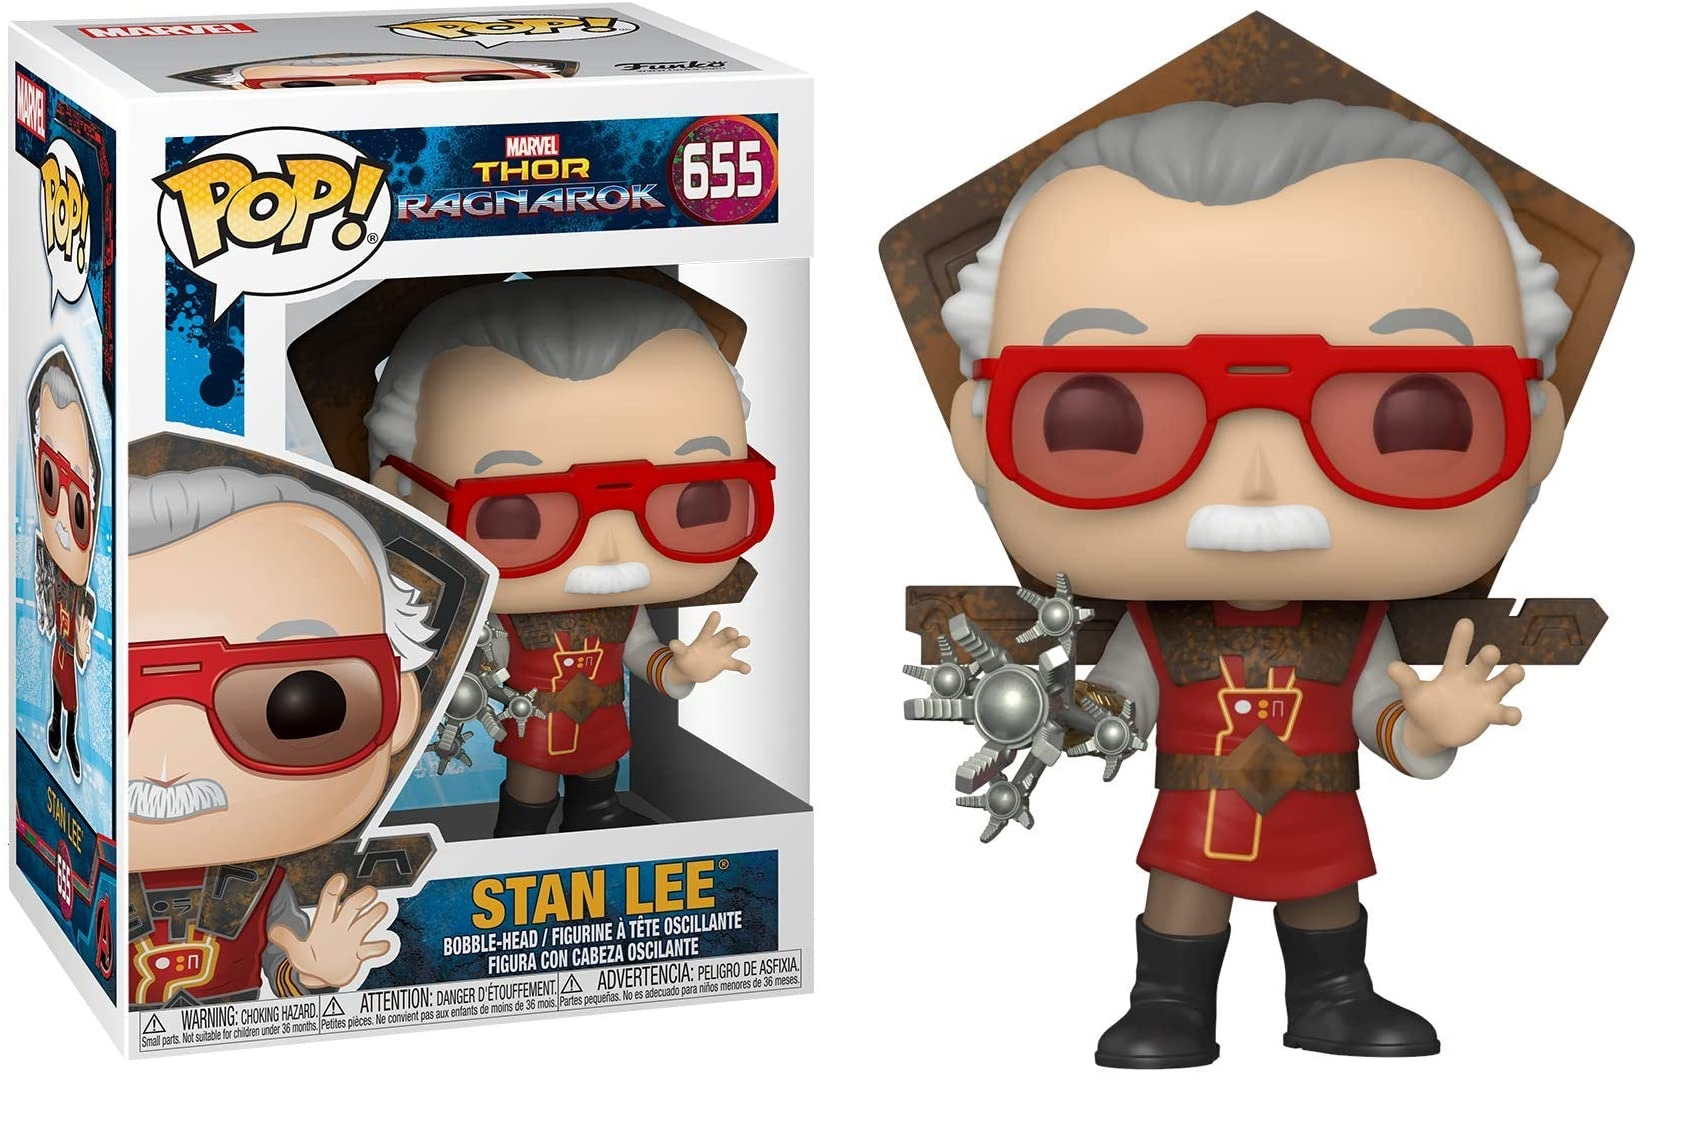 Marvel - Bobble Head Funko Pop N°655 : Stan Lee in Ragnarock outfit